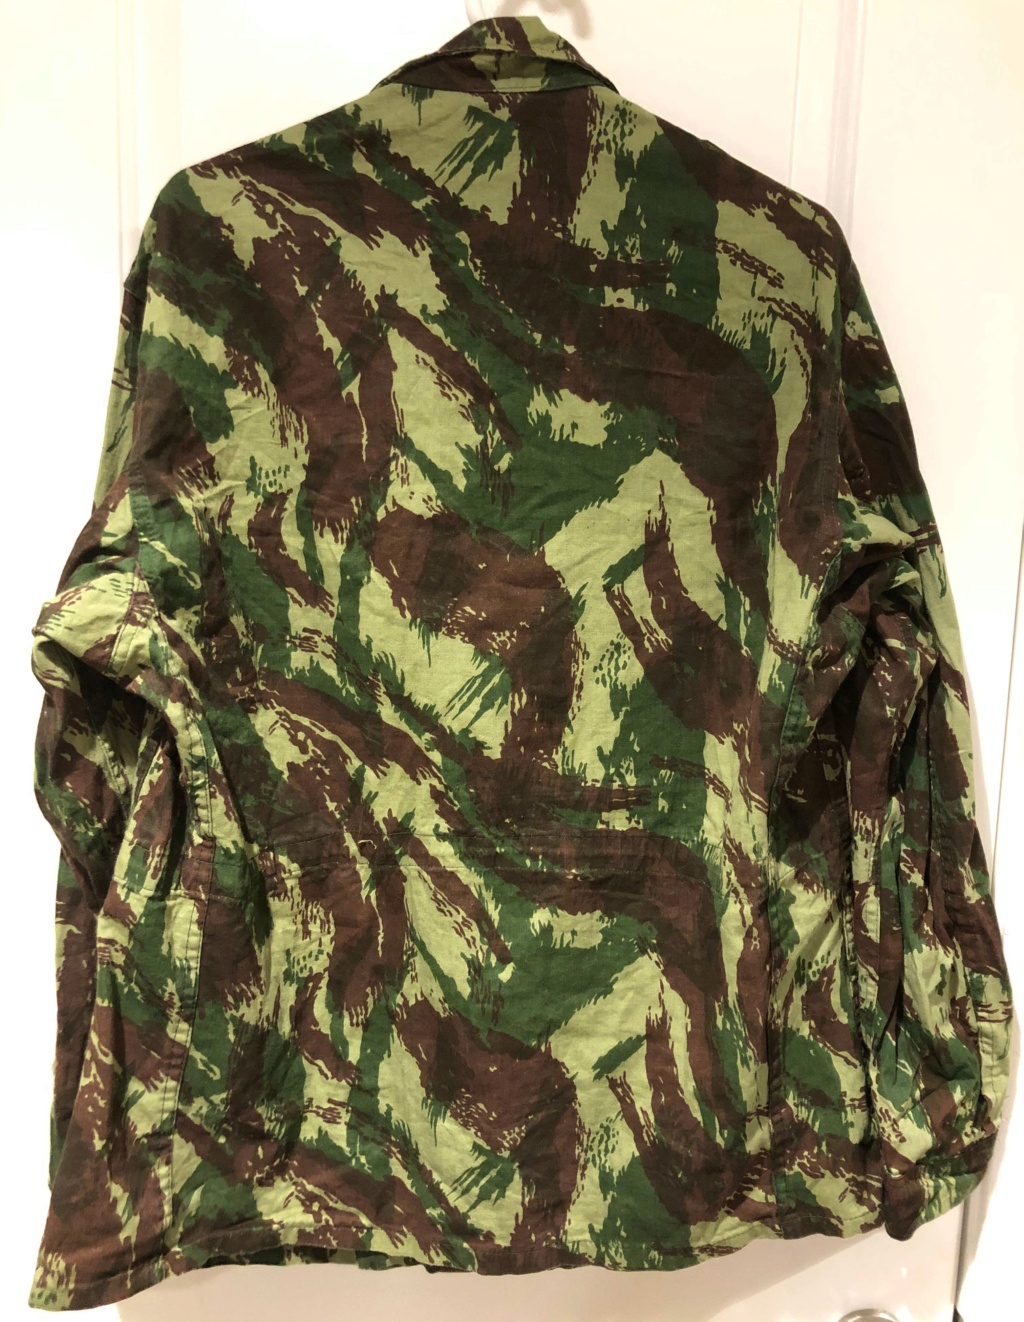 Portuguese Camo F1 Cut Export Uniform with French language tag 2_back12